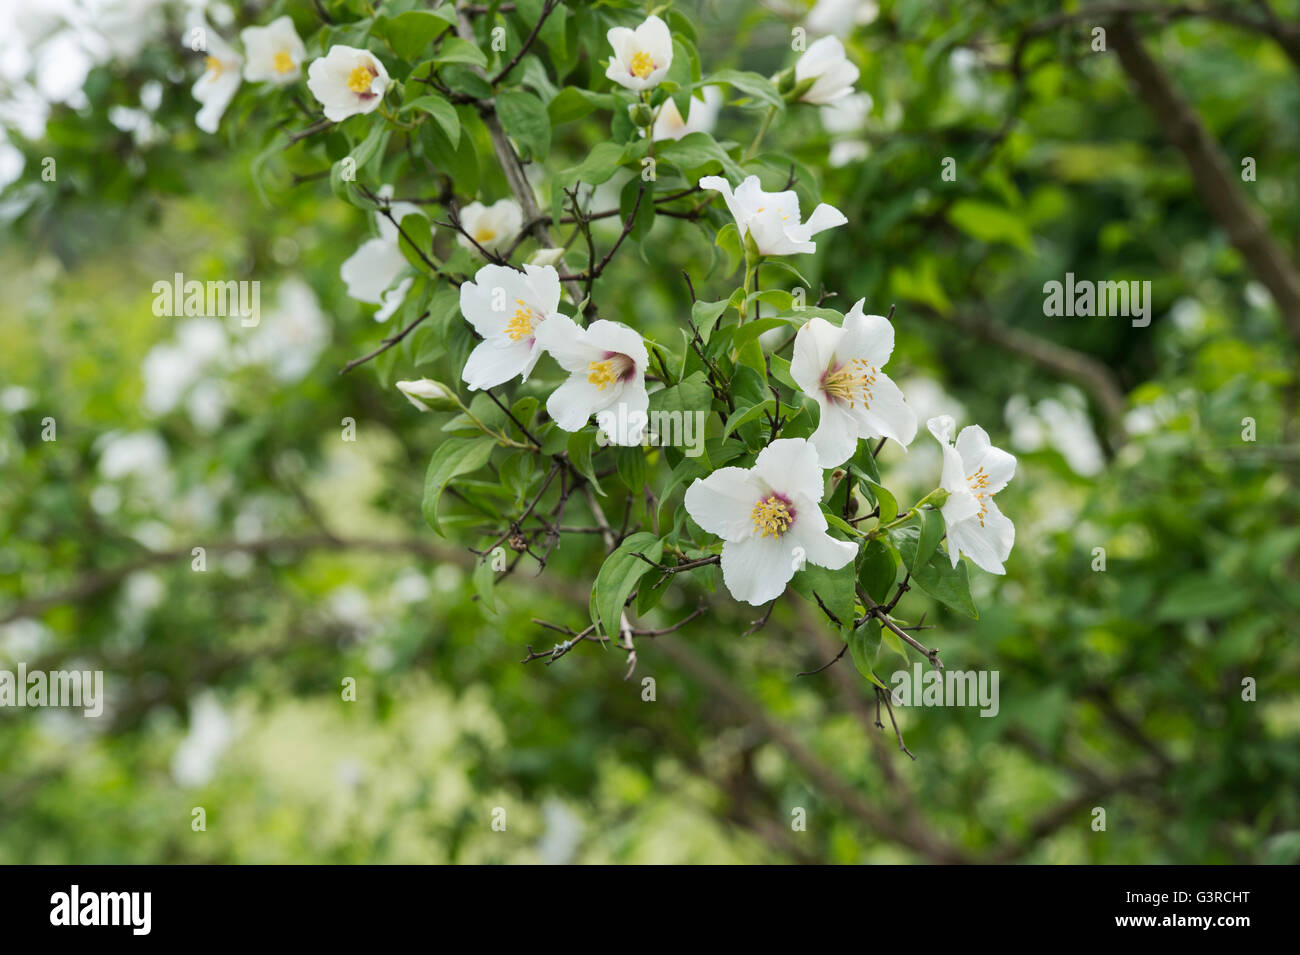 Philadelphus Belle Etoile Mock Orange Flowers Stock Photo